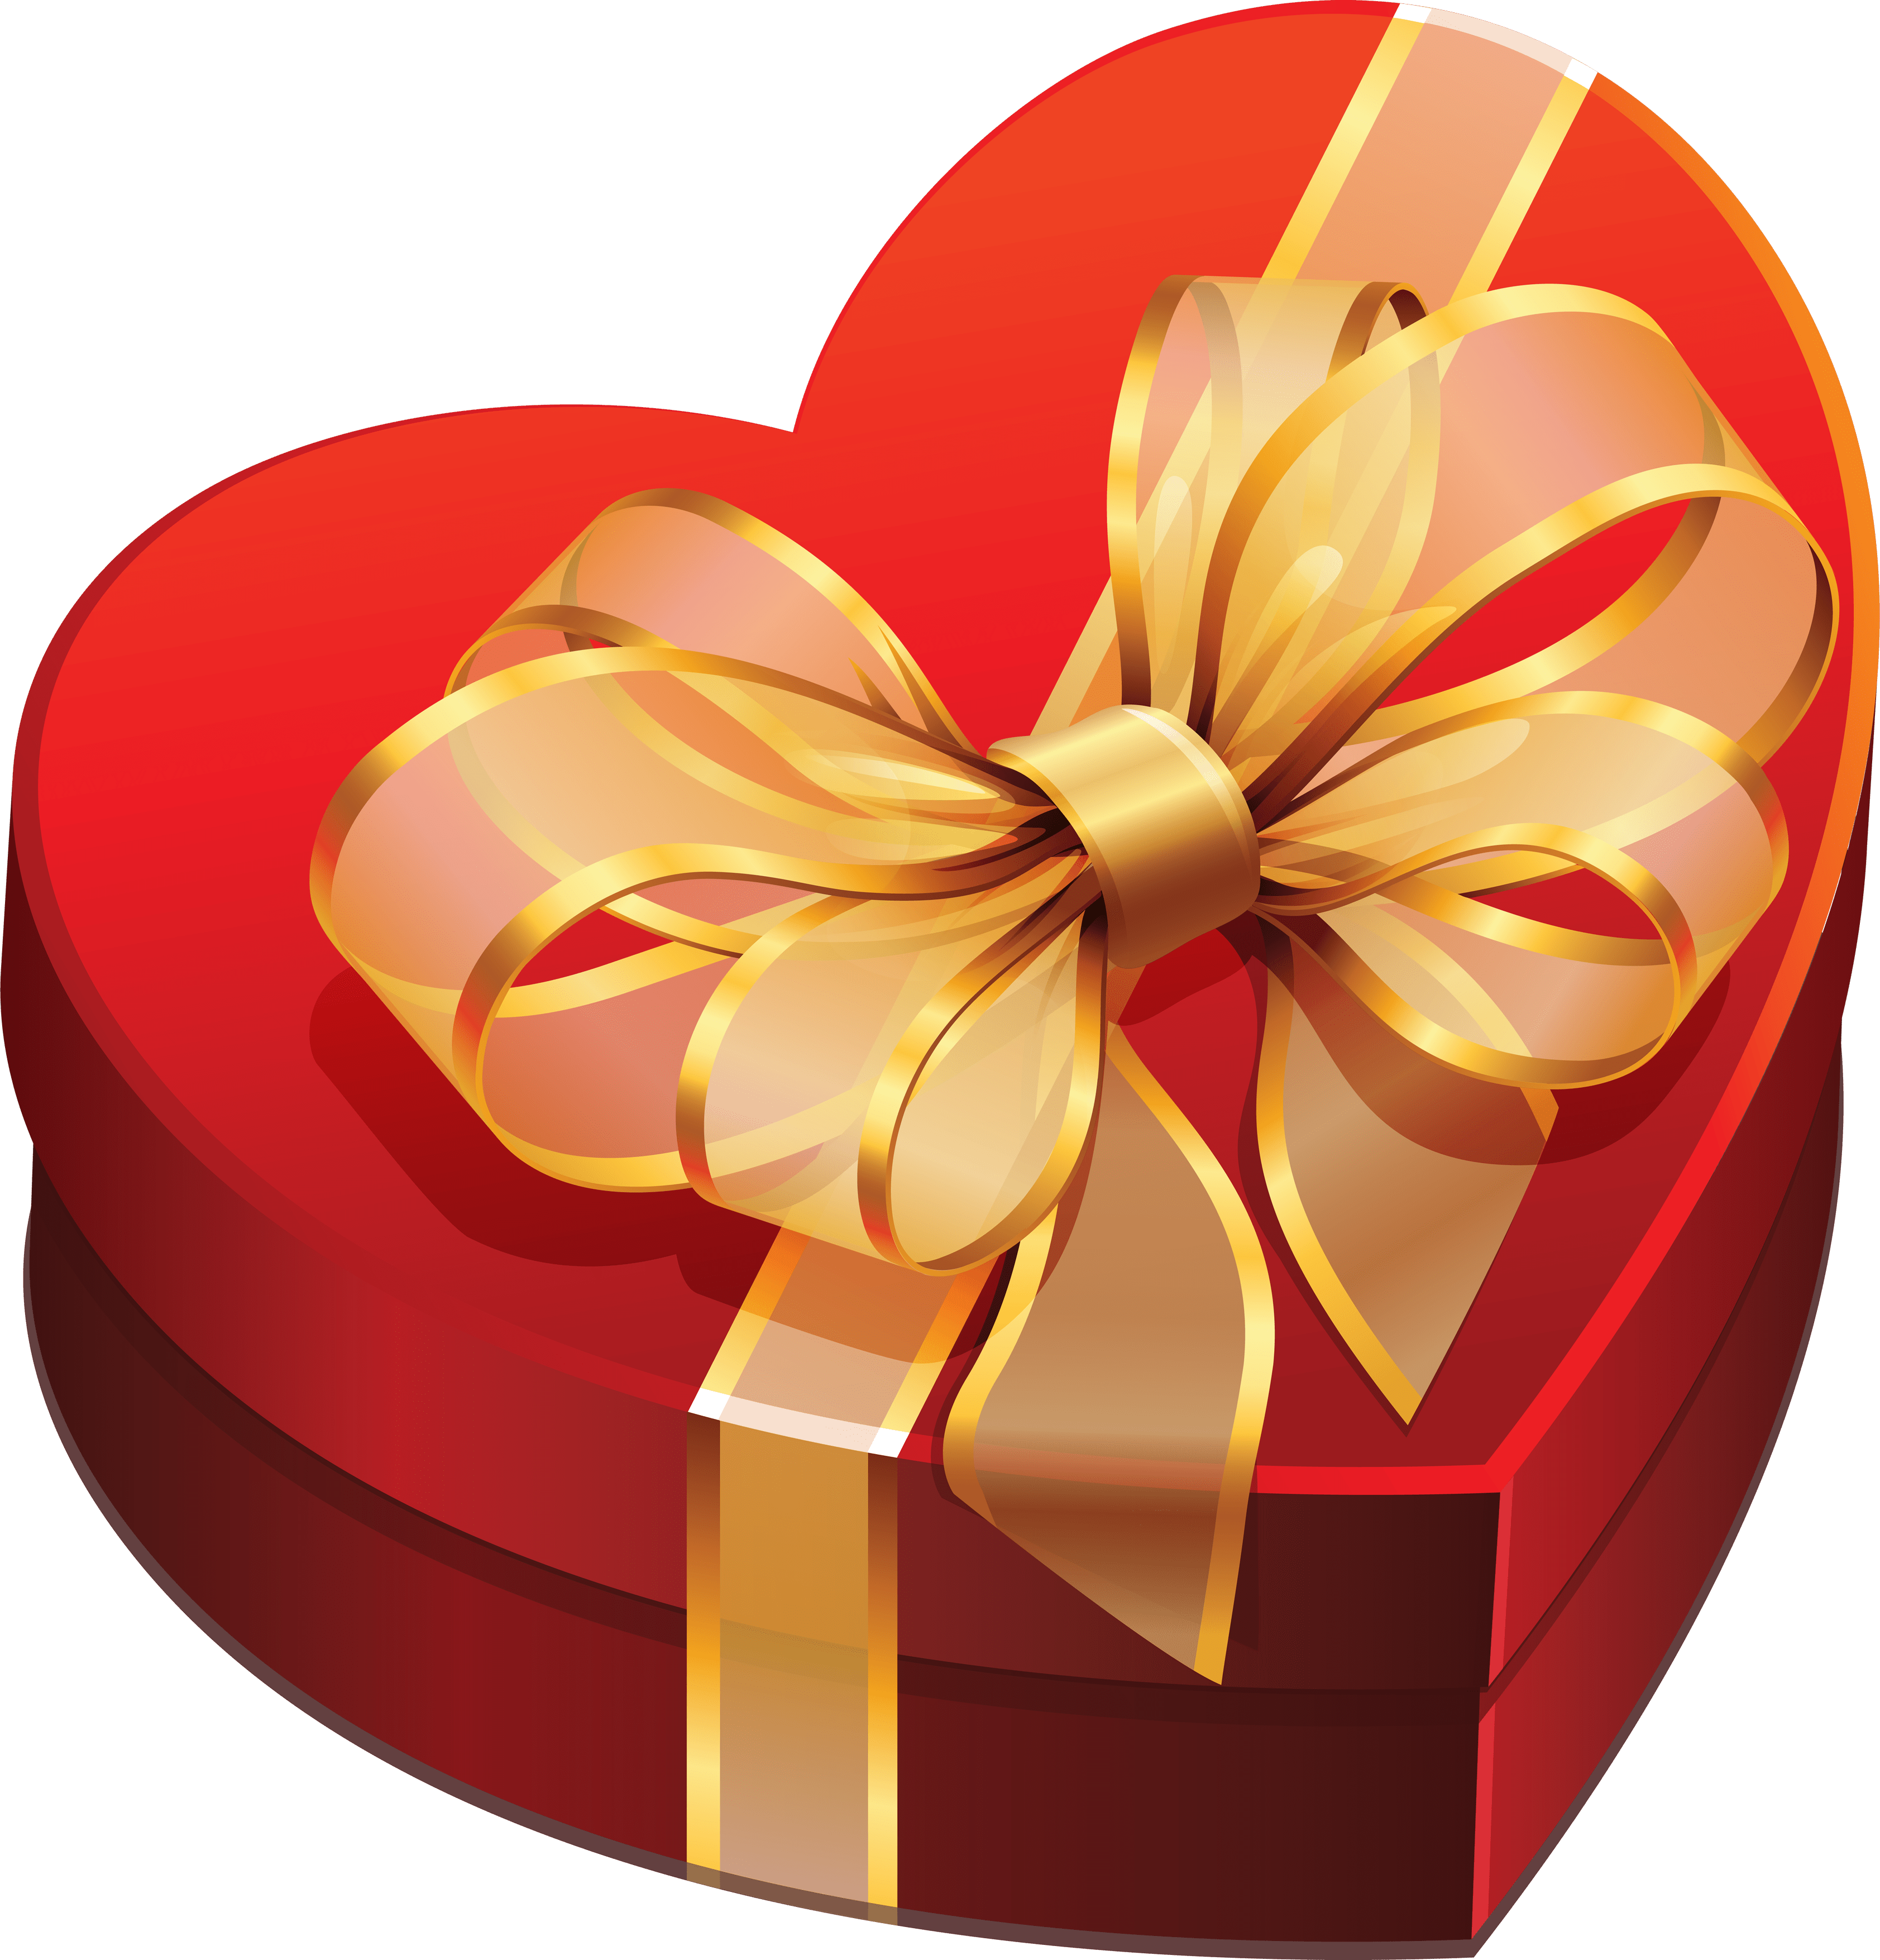 Image result for gift image